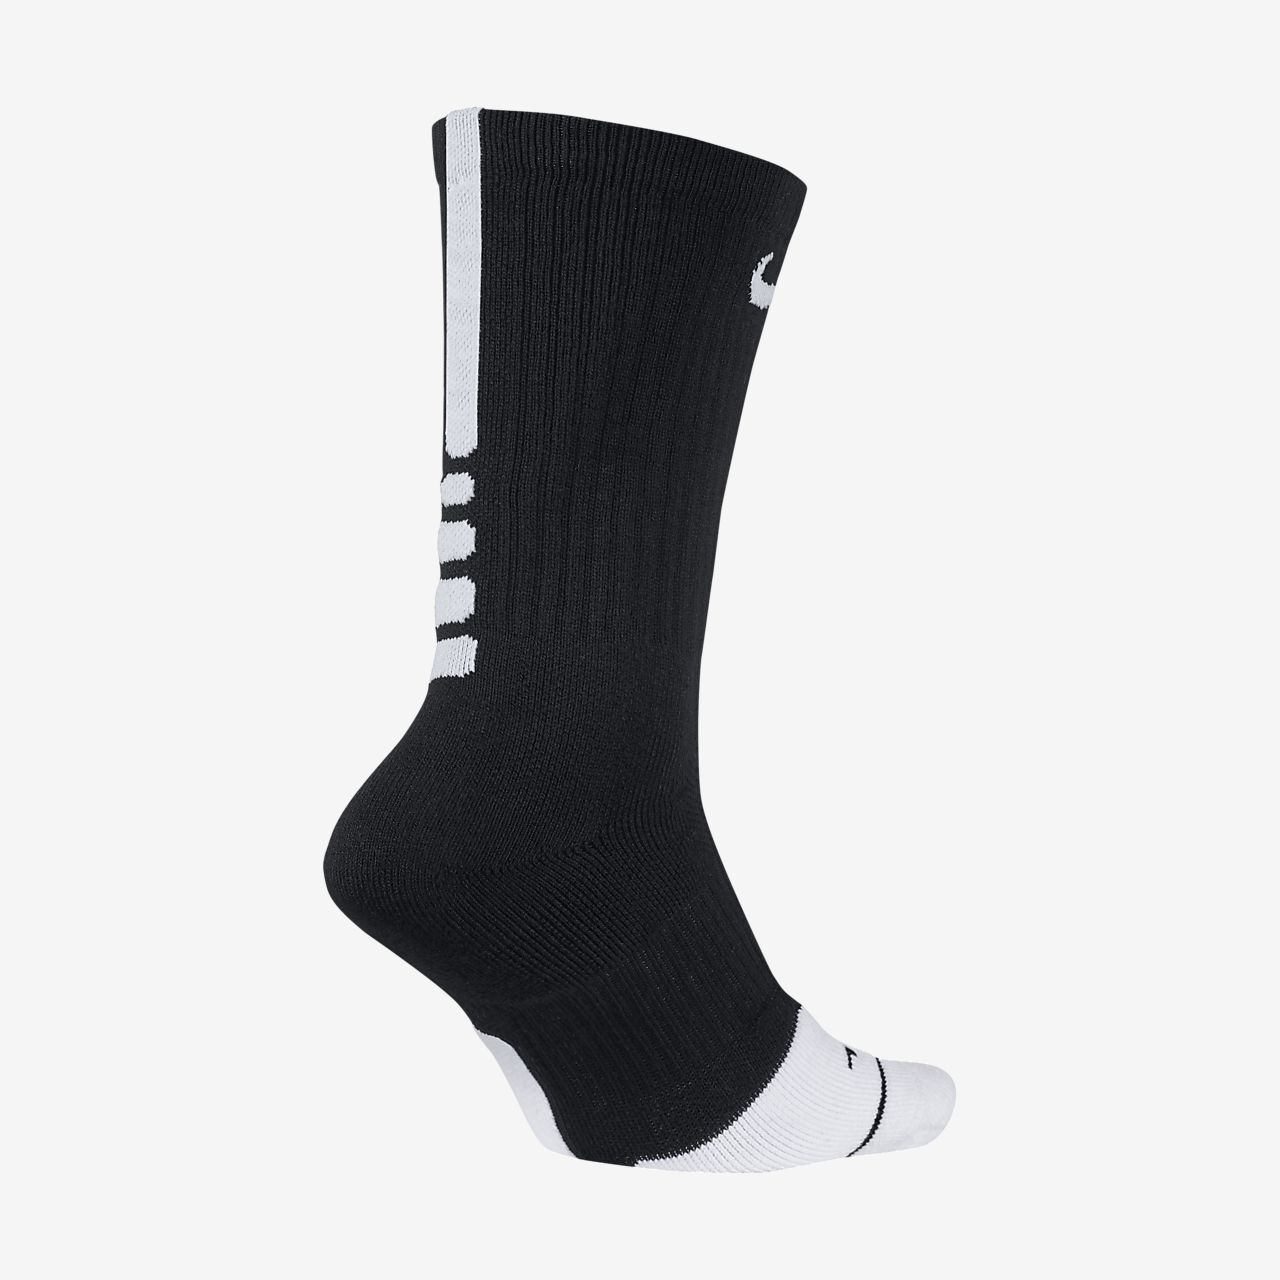 Nike Dry Elite 1.5 Crew Basketball Socks. Nike.com SG